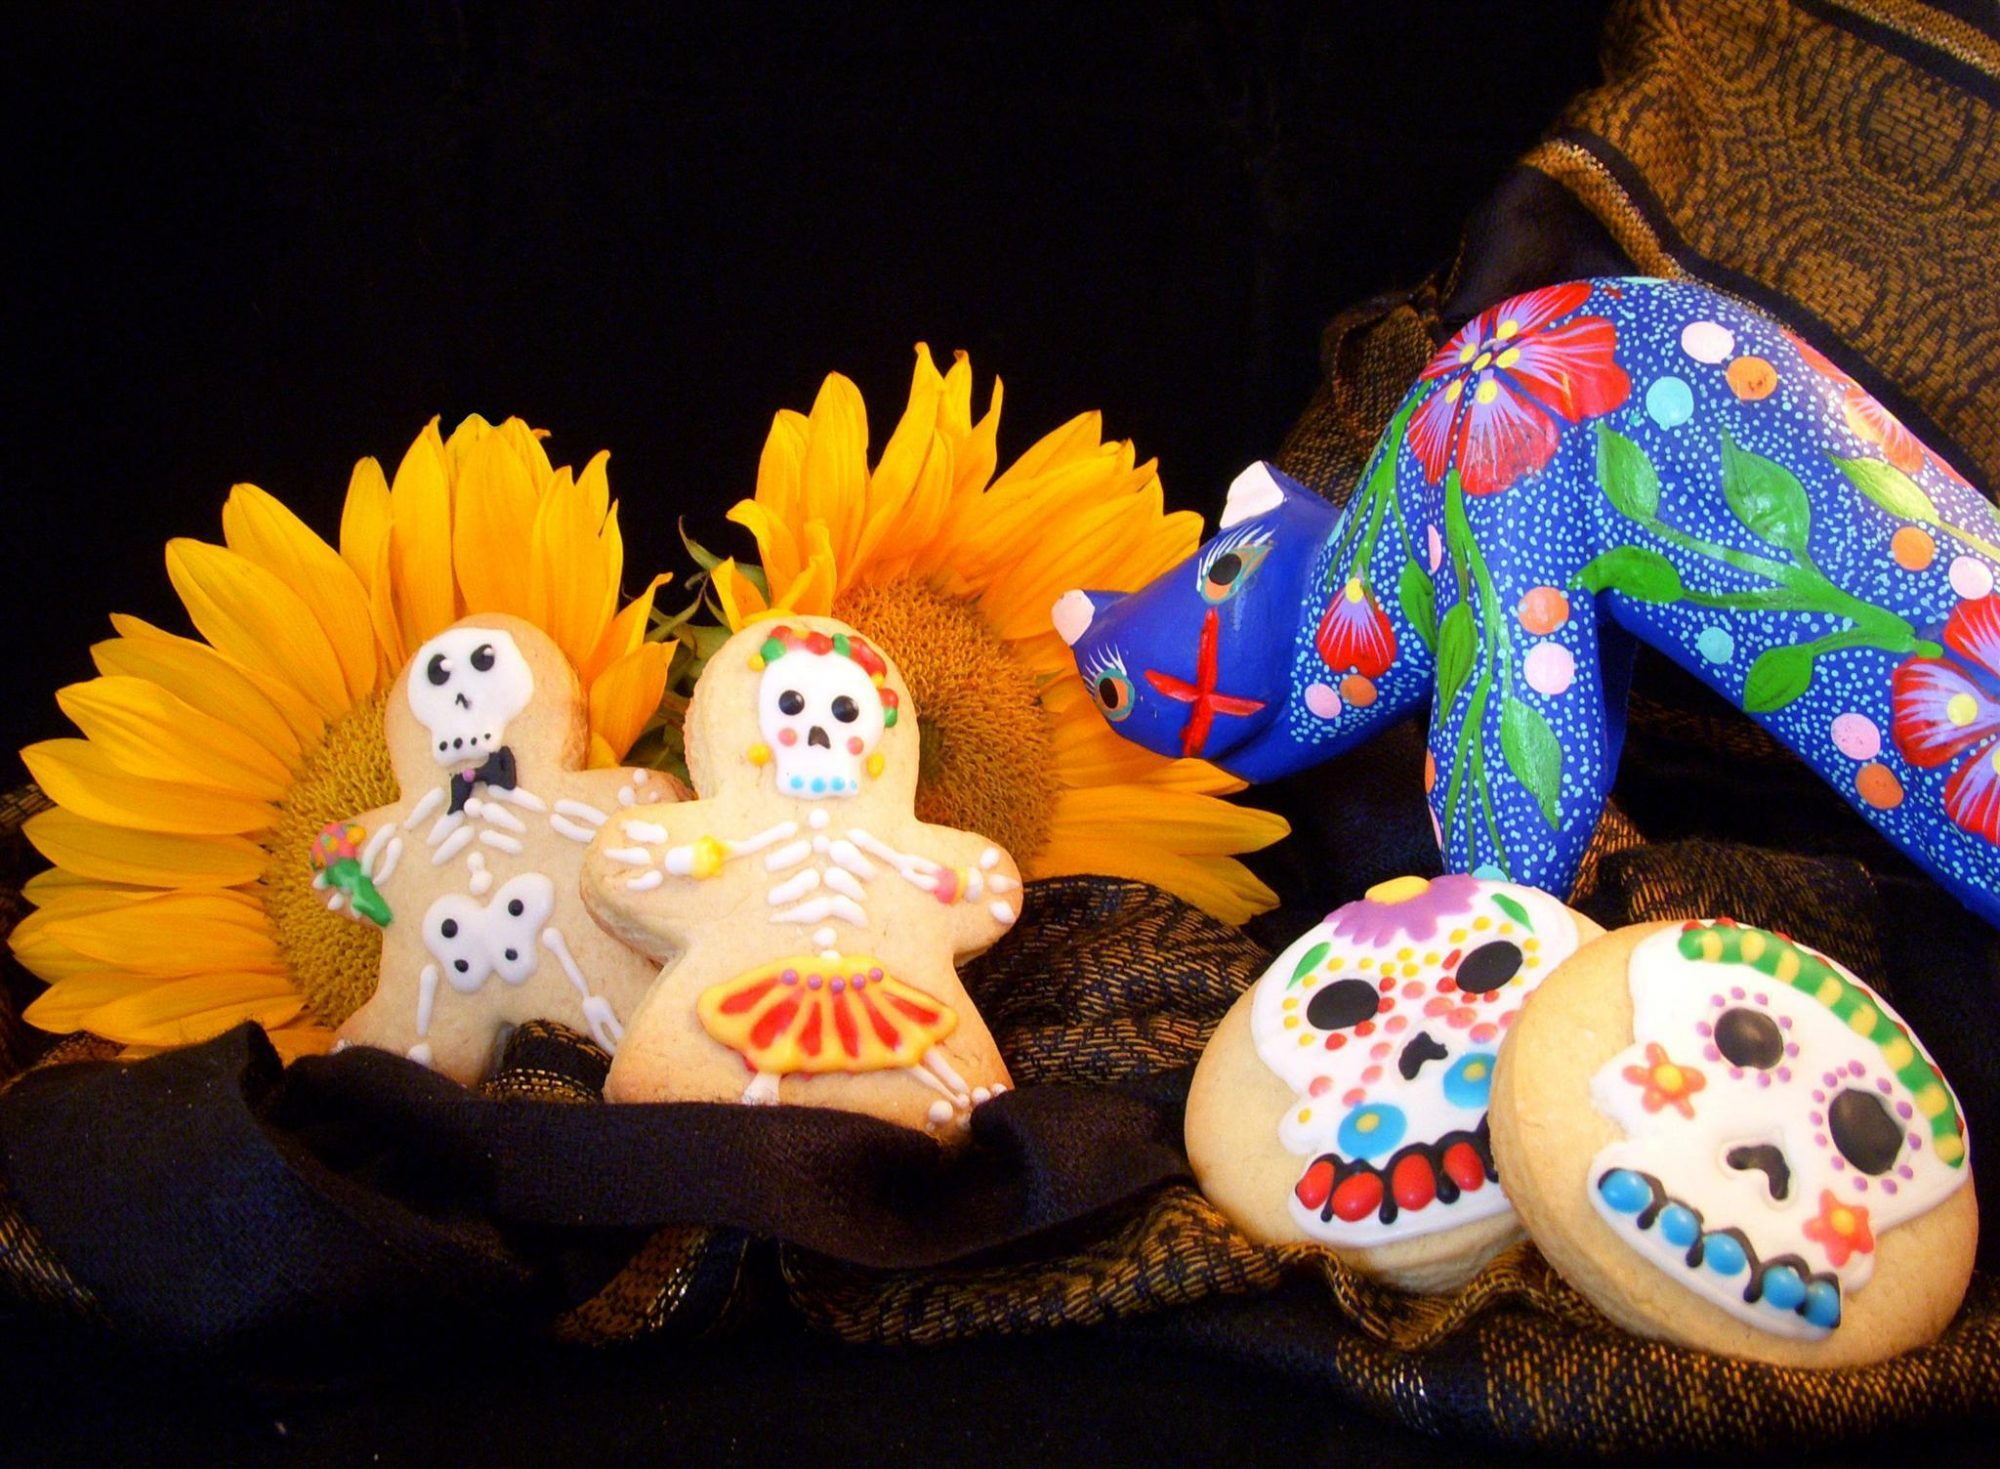 Day of the Dead cookies decorated to look like colorful skulls and skeletons